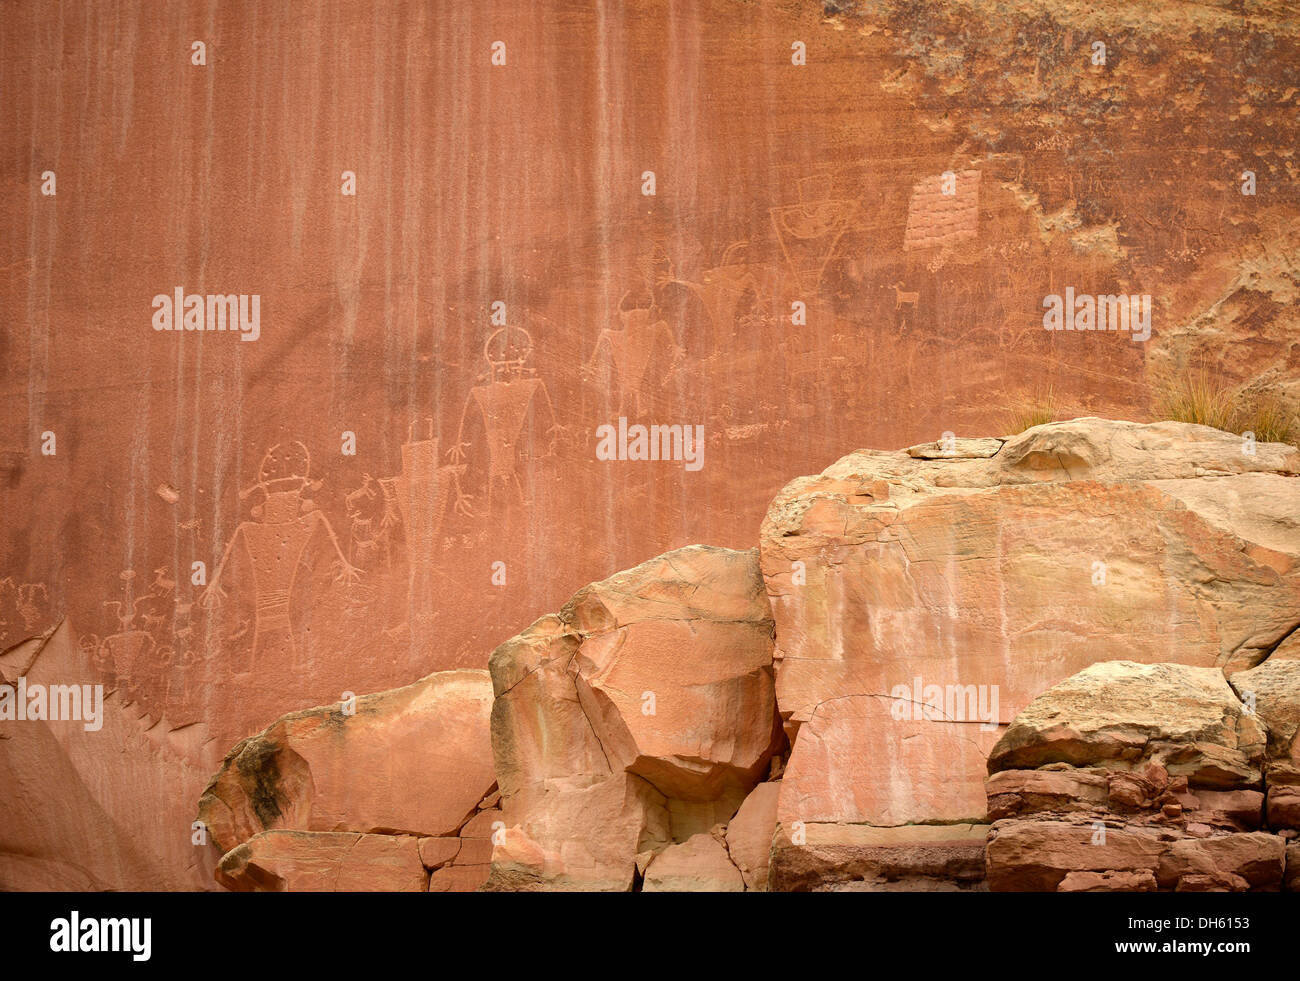 Petroglyphs etched in sandstone symbols mural paintings petroglyphs etched in sandstone symbols mural paintings depicting fremont anasazi navajo and anglo saxon cultures buycottarizona Images